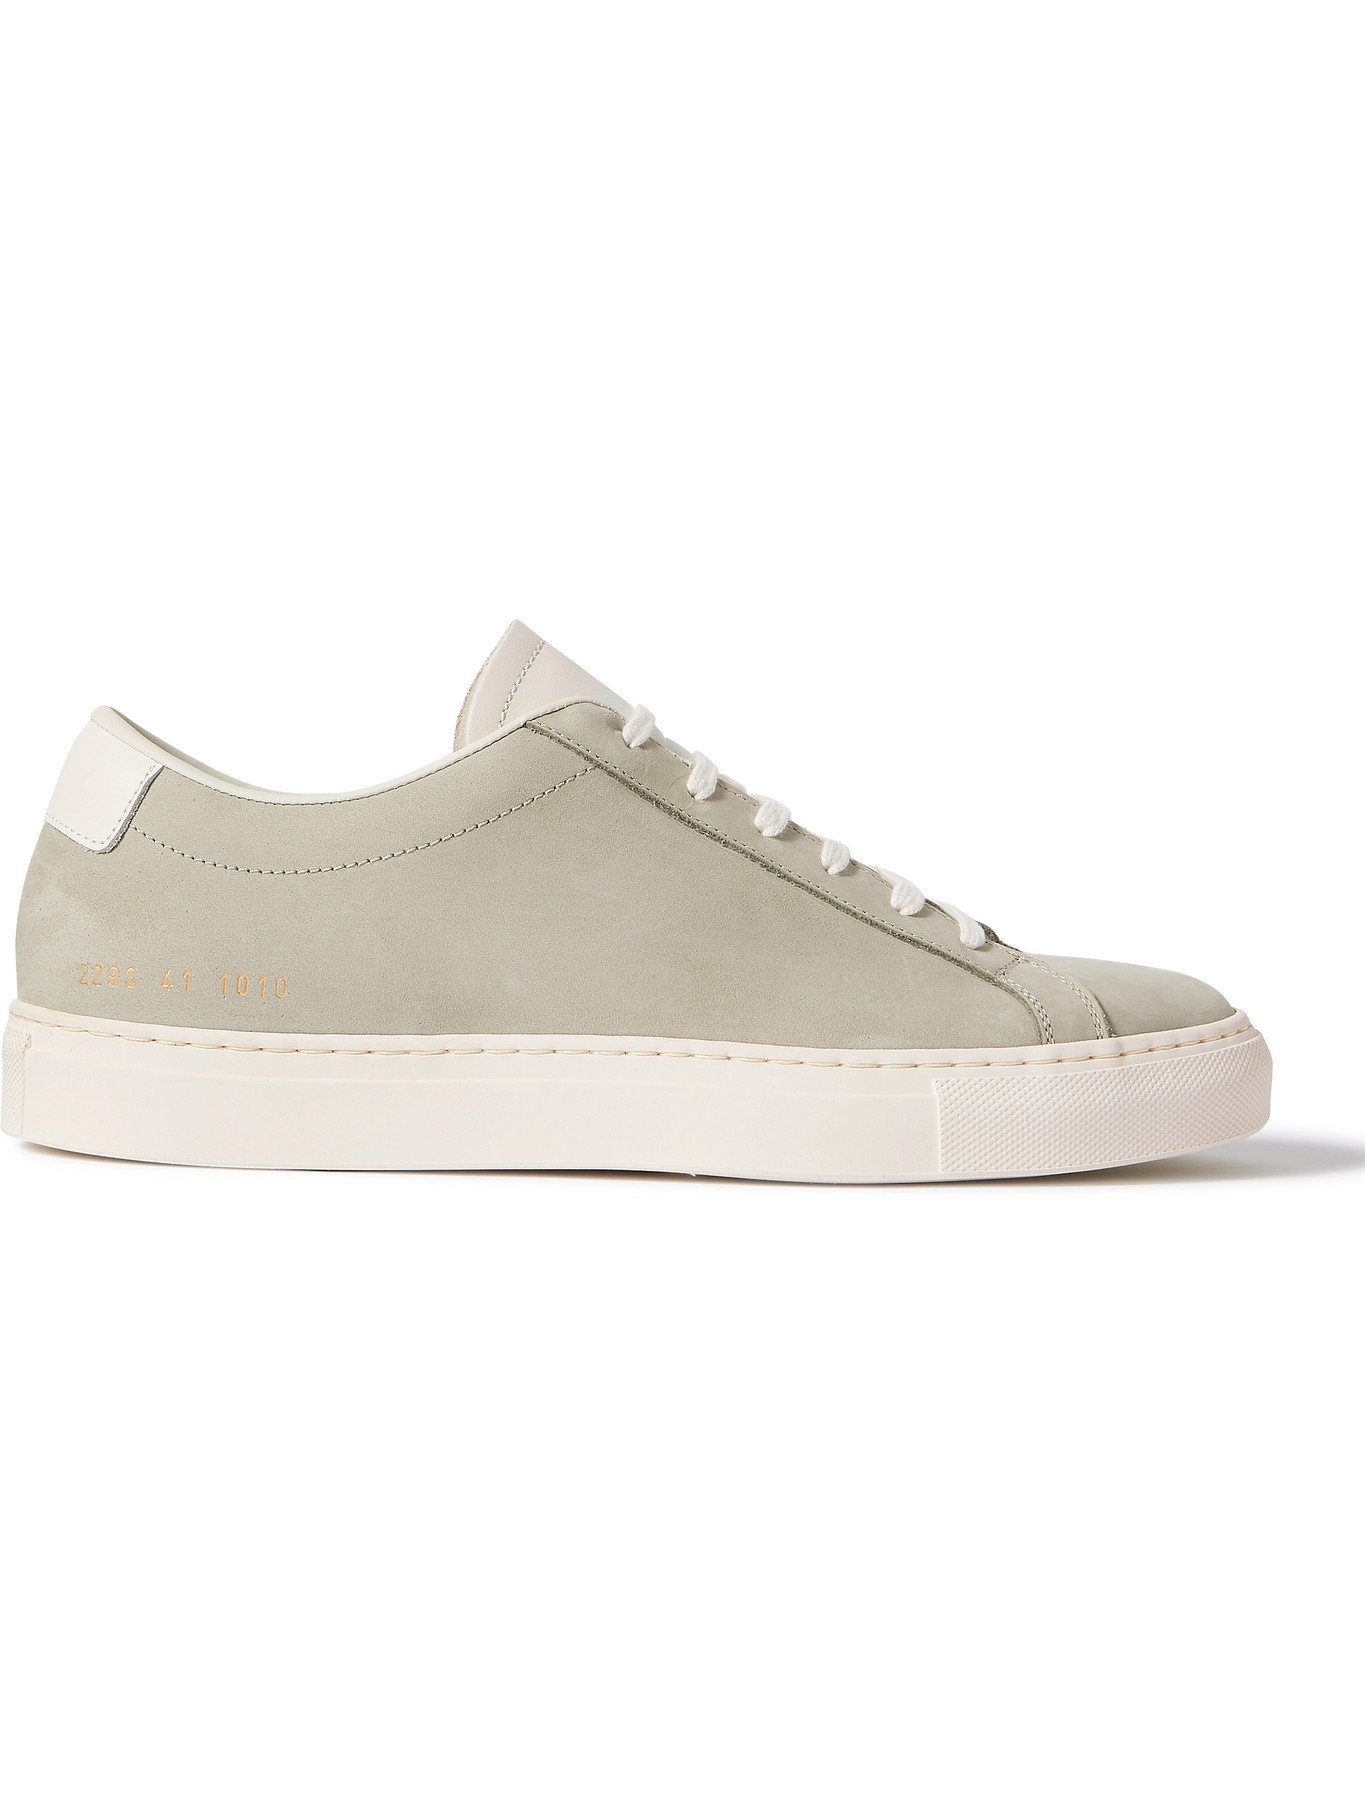 COMMON PROJECTS - Original Achilles Leather-Trimmed Nubuck Sneakers - Green